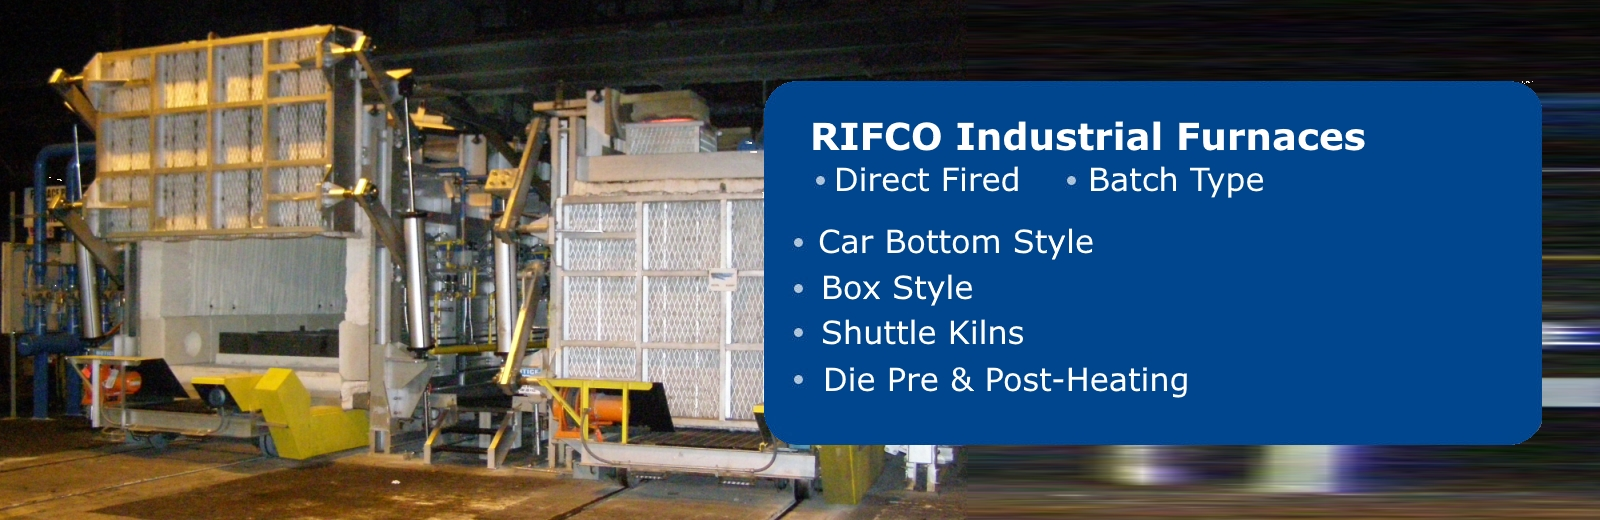 Rifco Industrial Furnaces by Benko Products